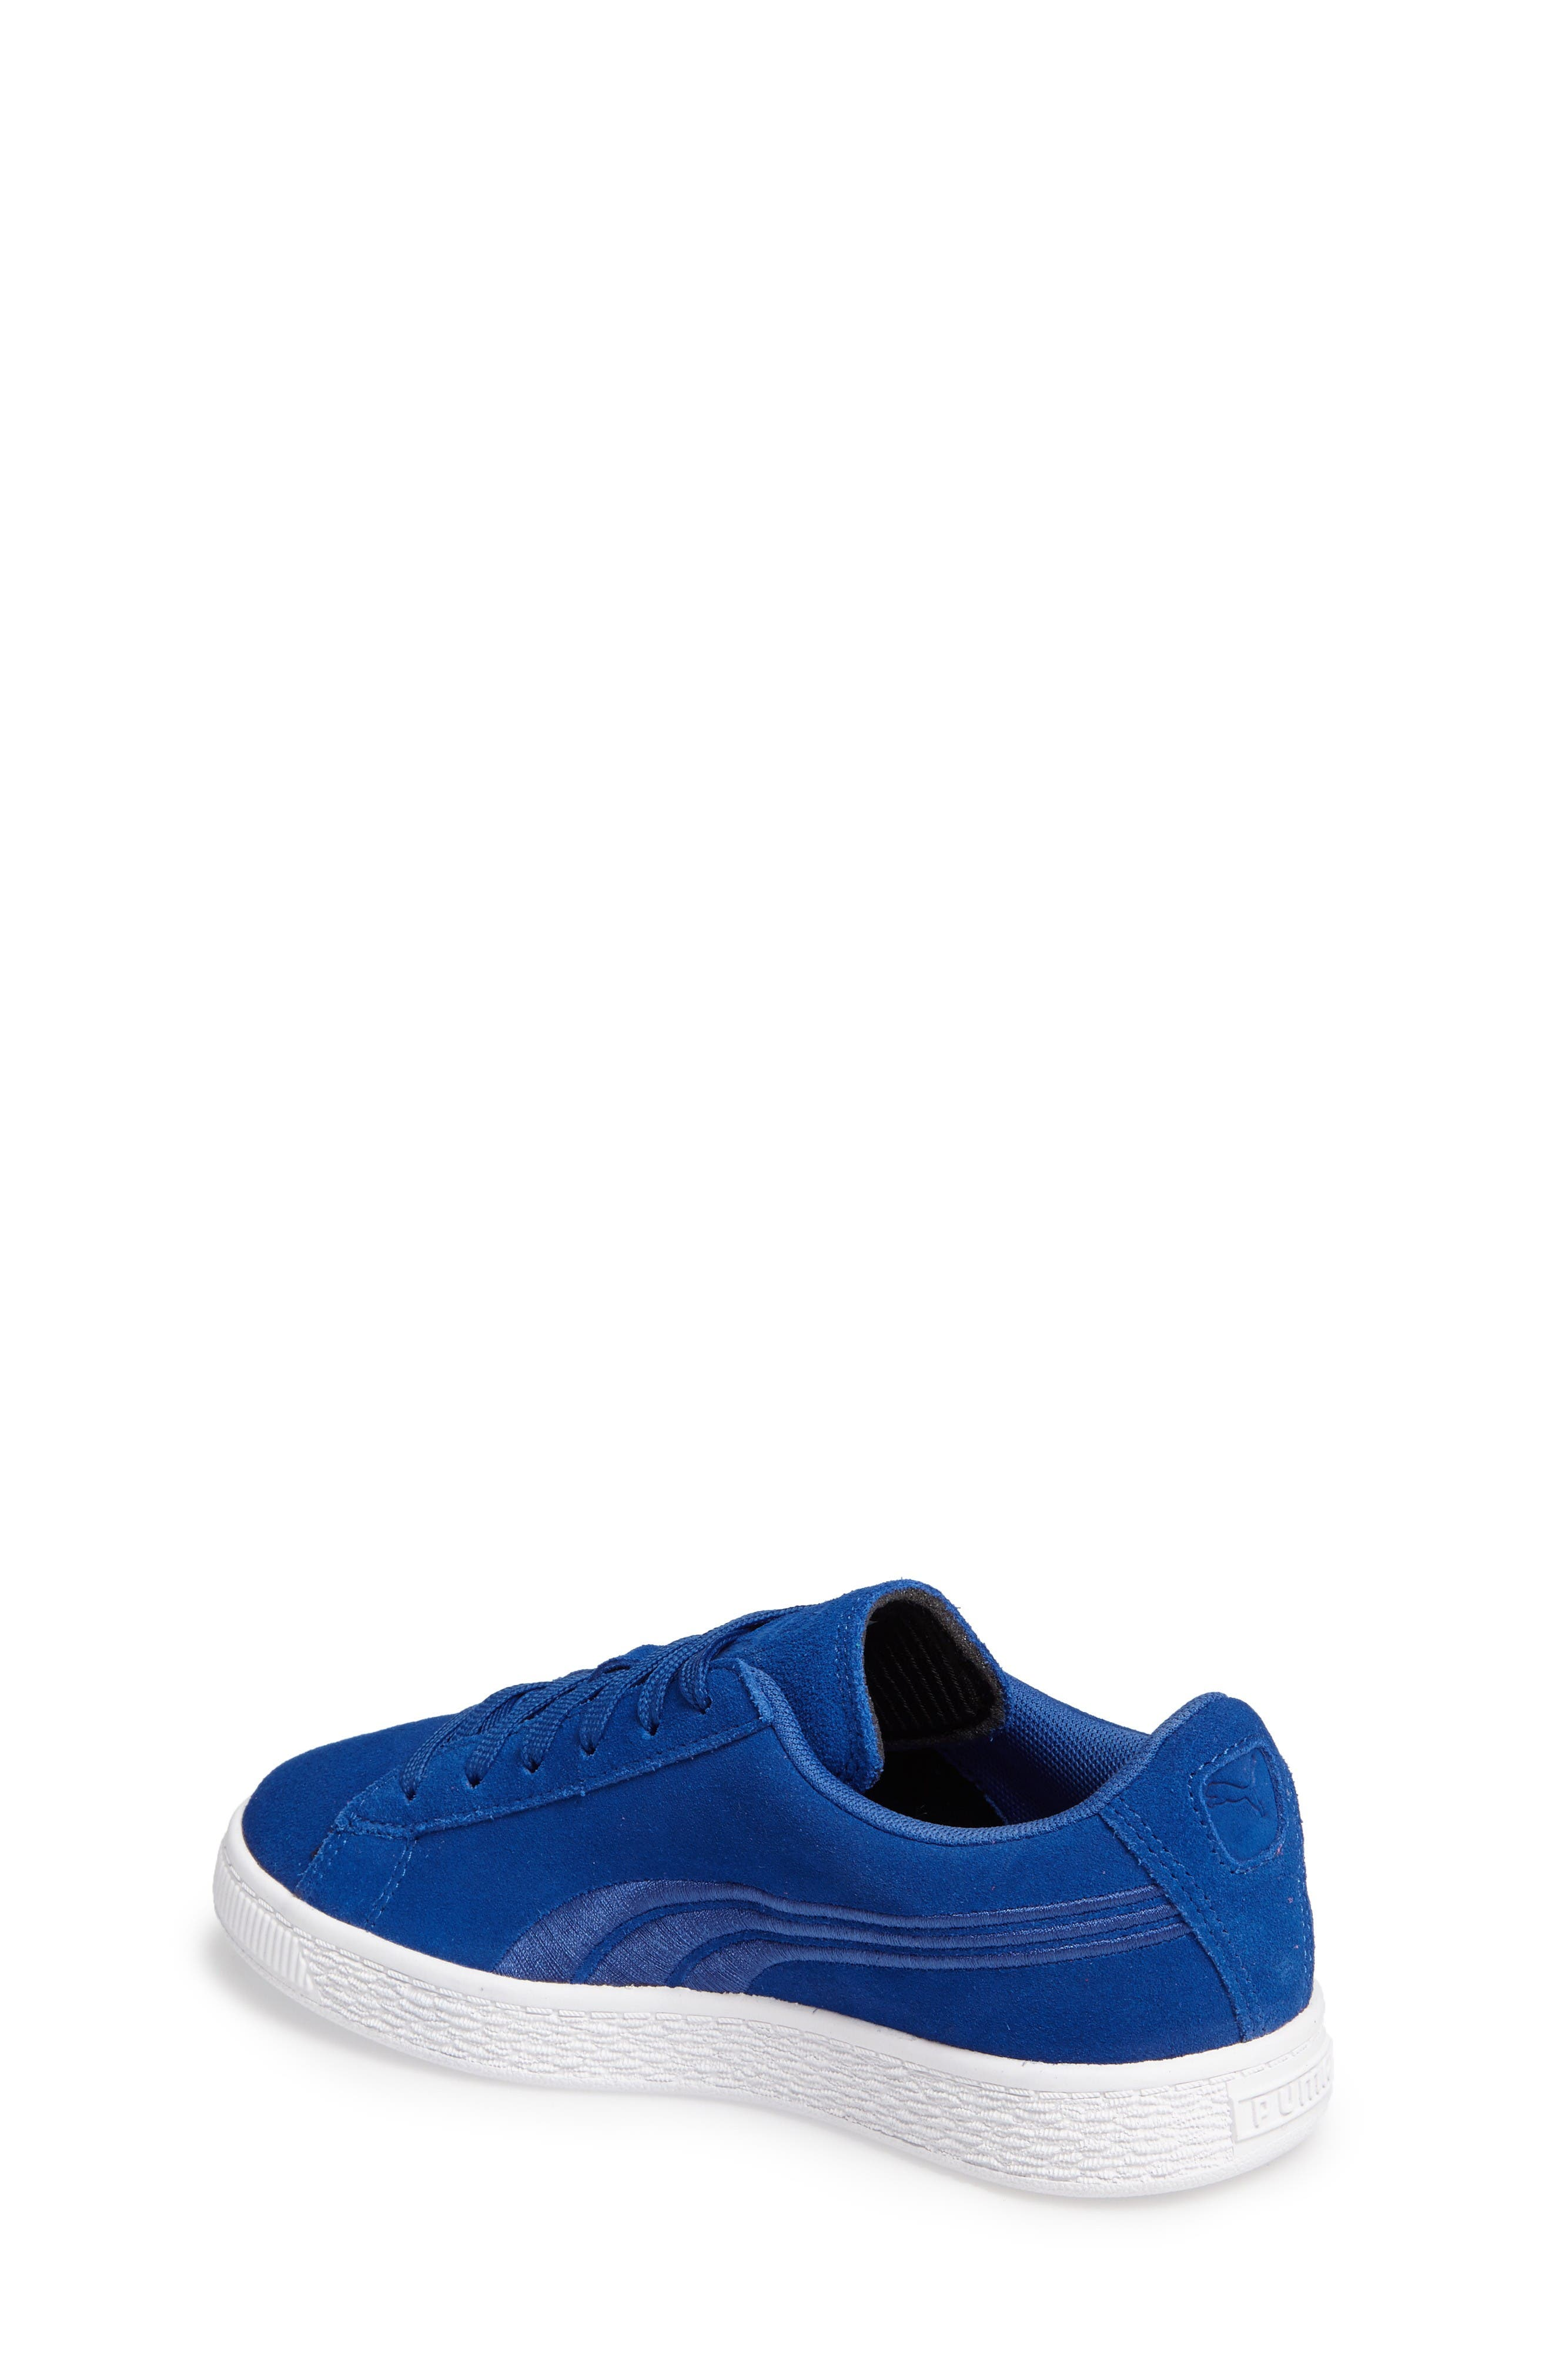 Classic Badge Sneaker,                             Alternate thumbnail 2, color,                             Blue